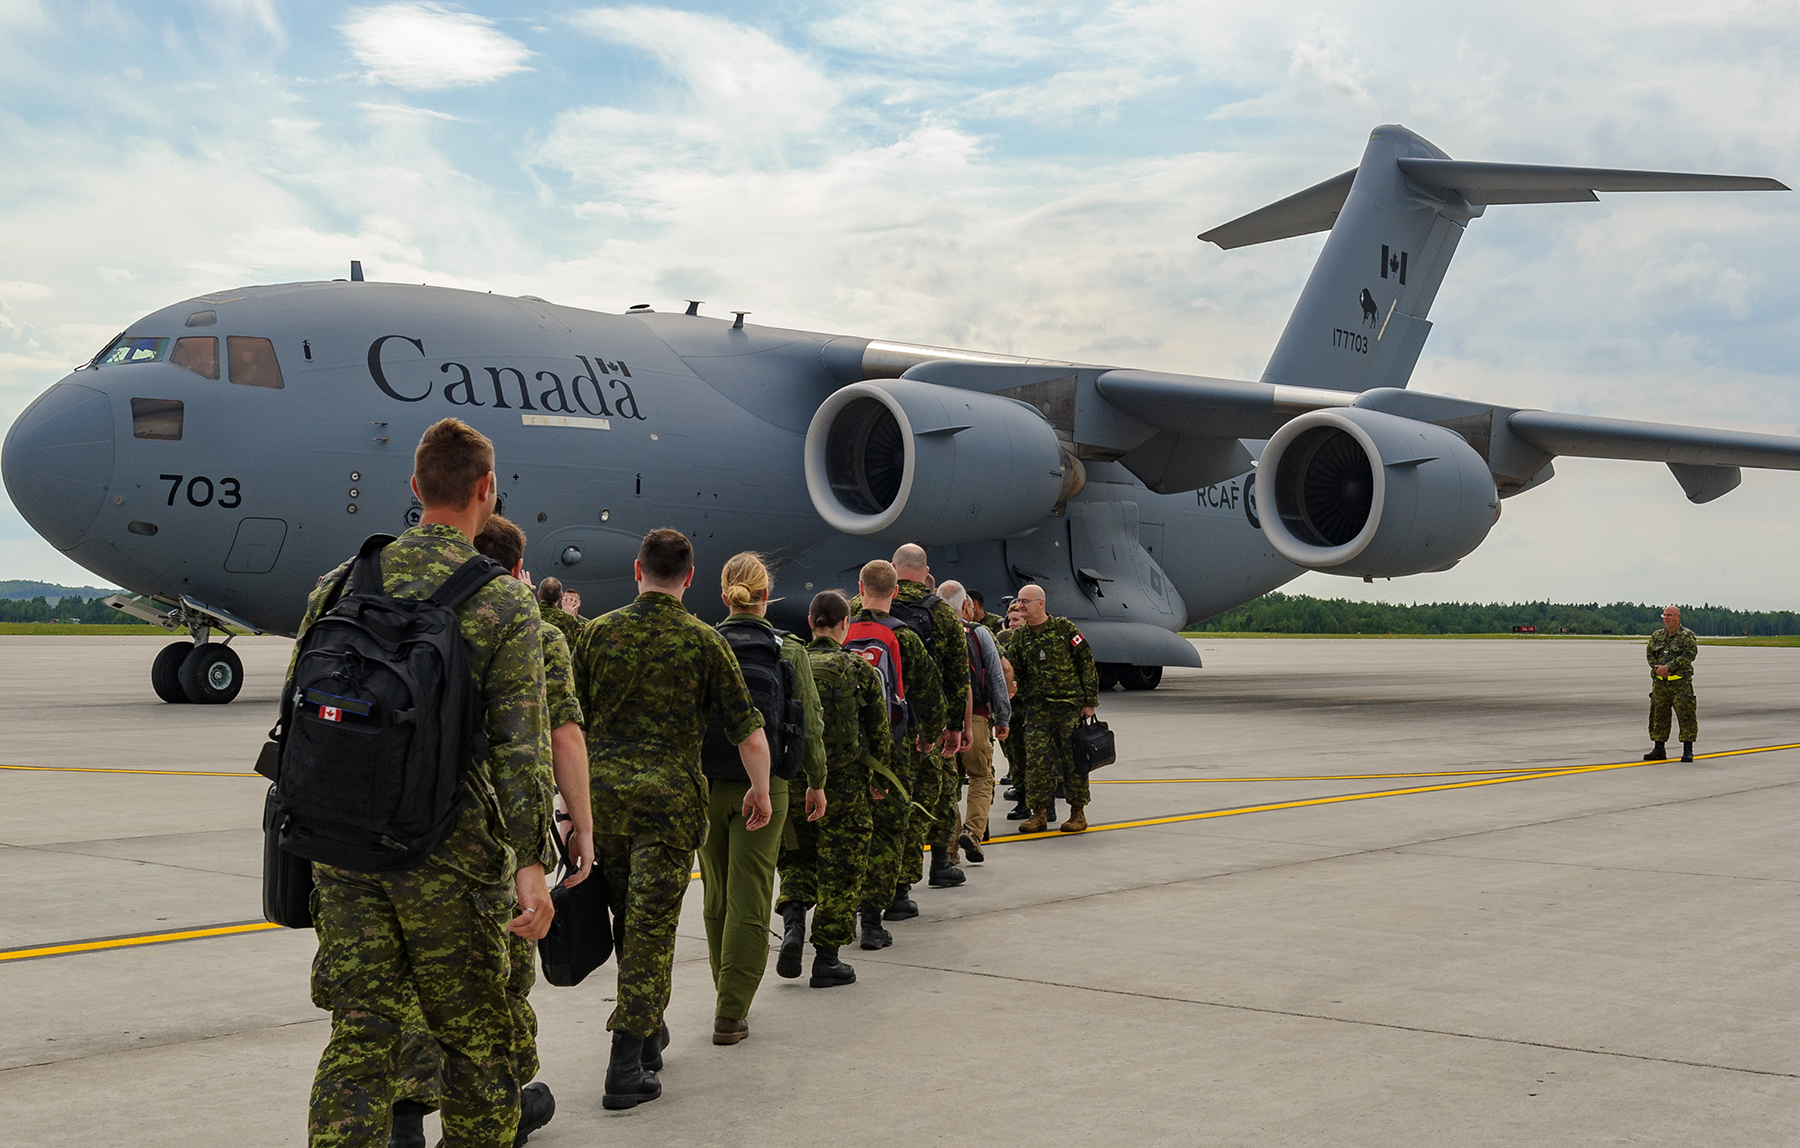 At CFB Bagotville, Québec, members of the Airfield Activation Team deployed on Operation Reassurance board a CC-177 Globemaster bound for Romania on August 11, 2017. PHOTO: Private Mylène Bissonnette, BN10-2017-0484-010